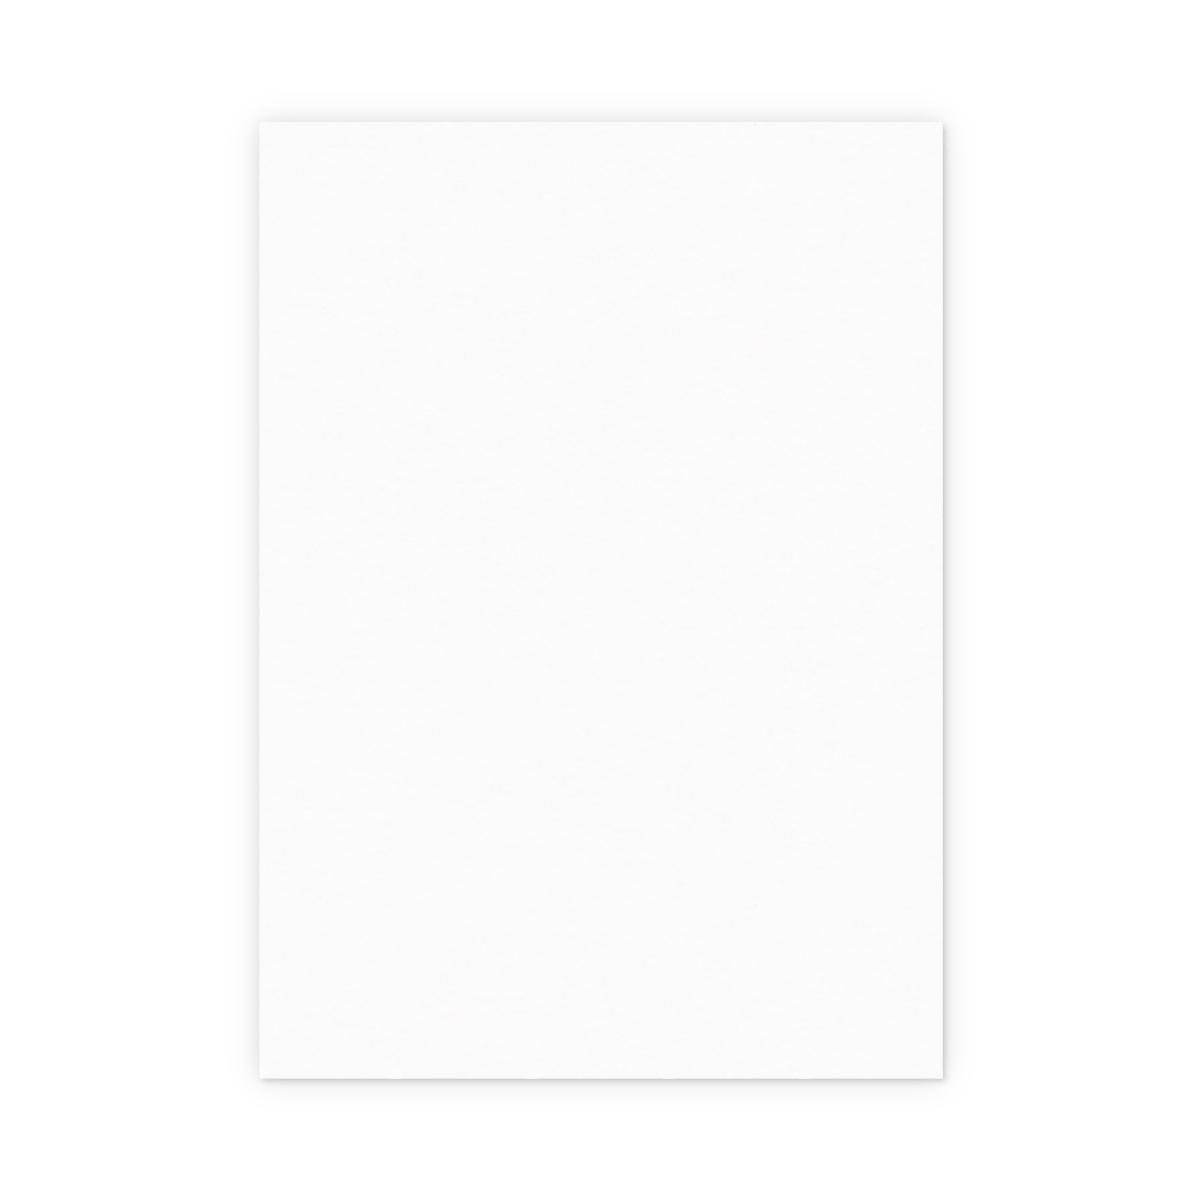 Https%3a%2f%2fwww.papier.com%2fproduct image%2f34633%2f4%2fshapes colours four 8658 arriere 1519899854.png?ixlib=rb 1.1